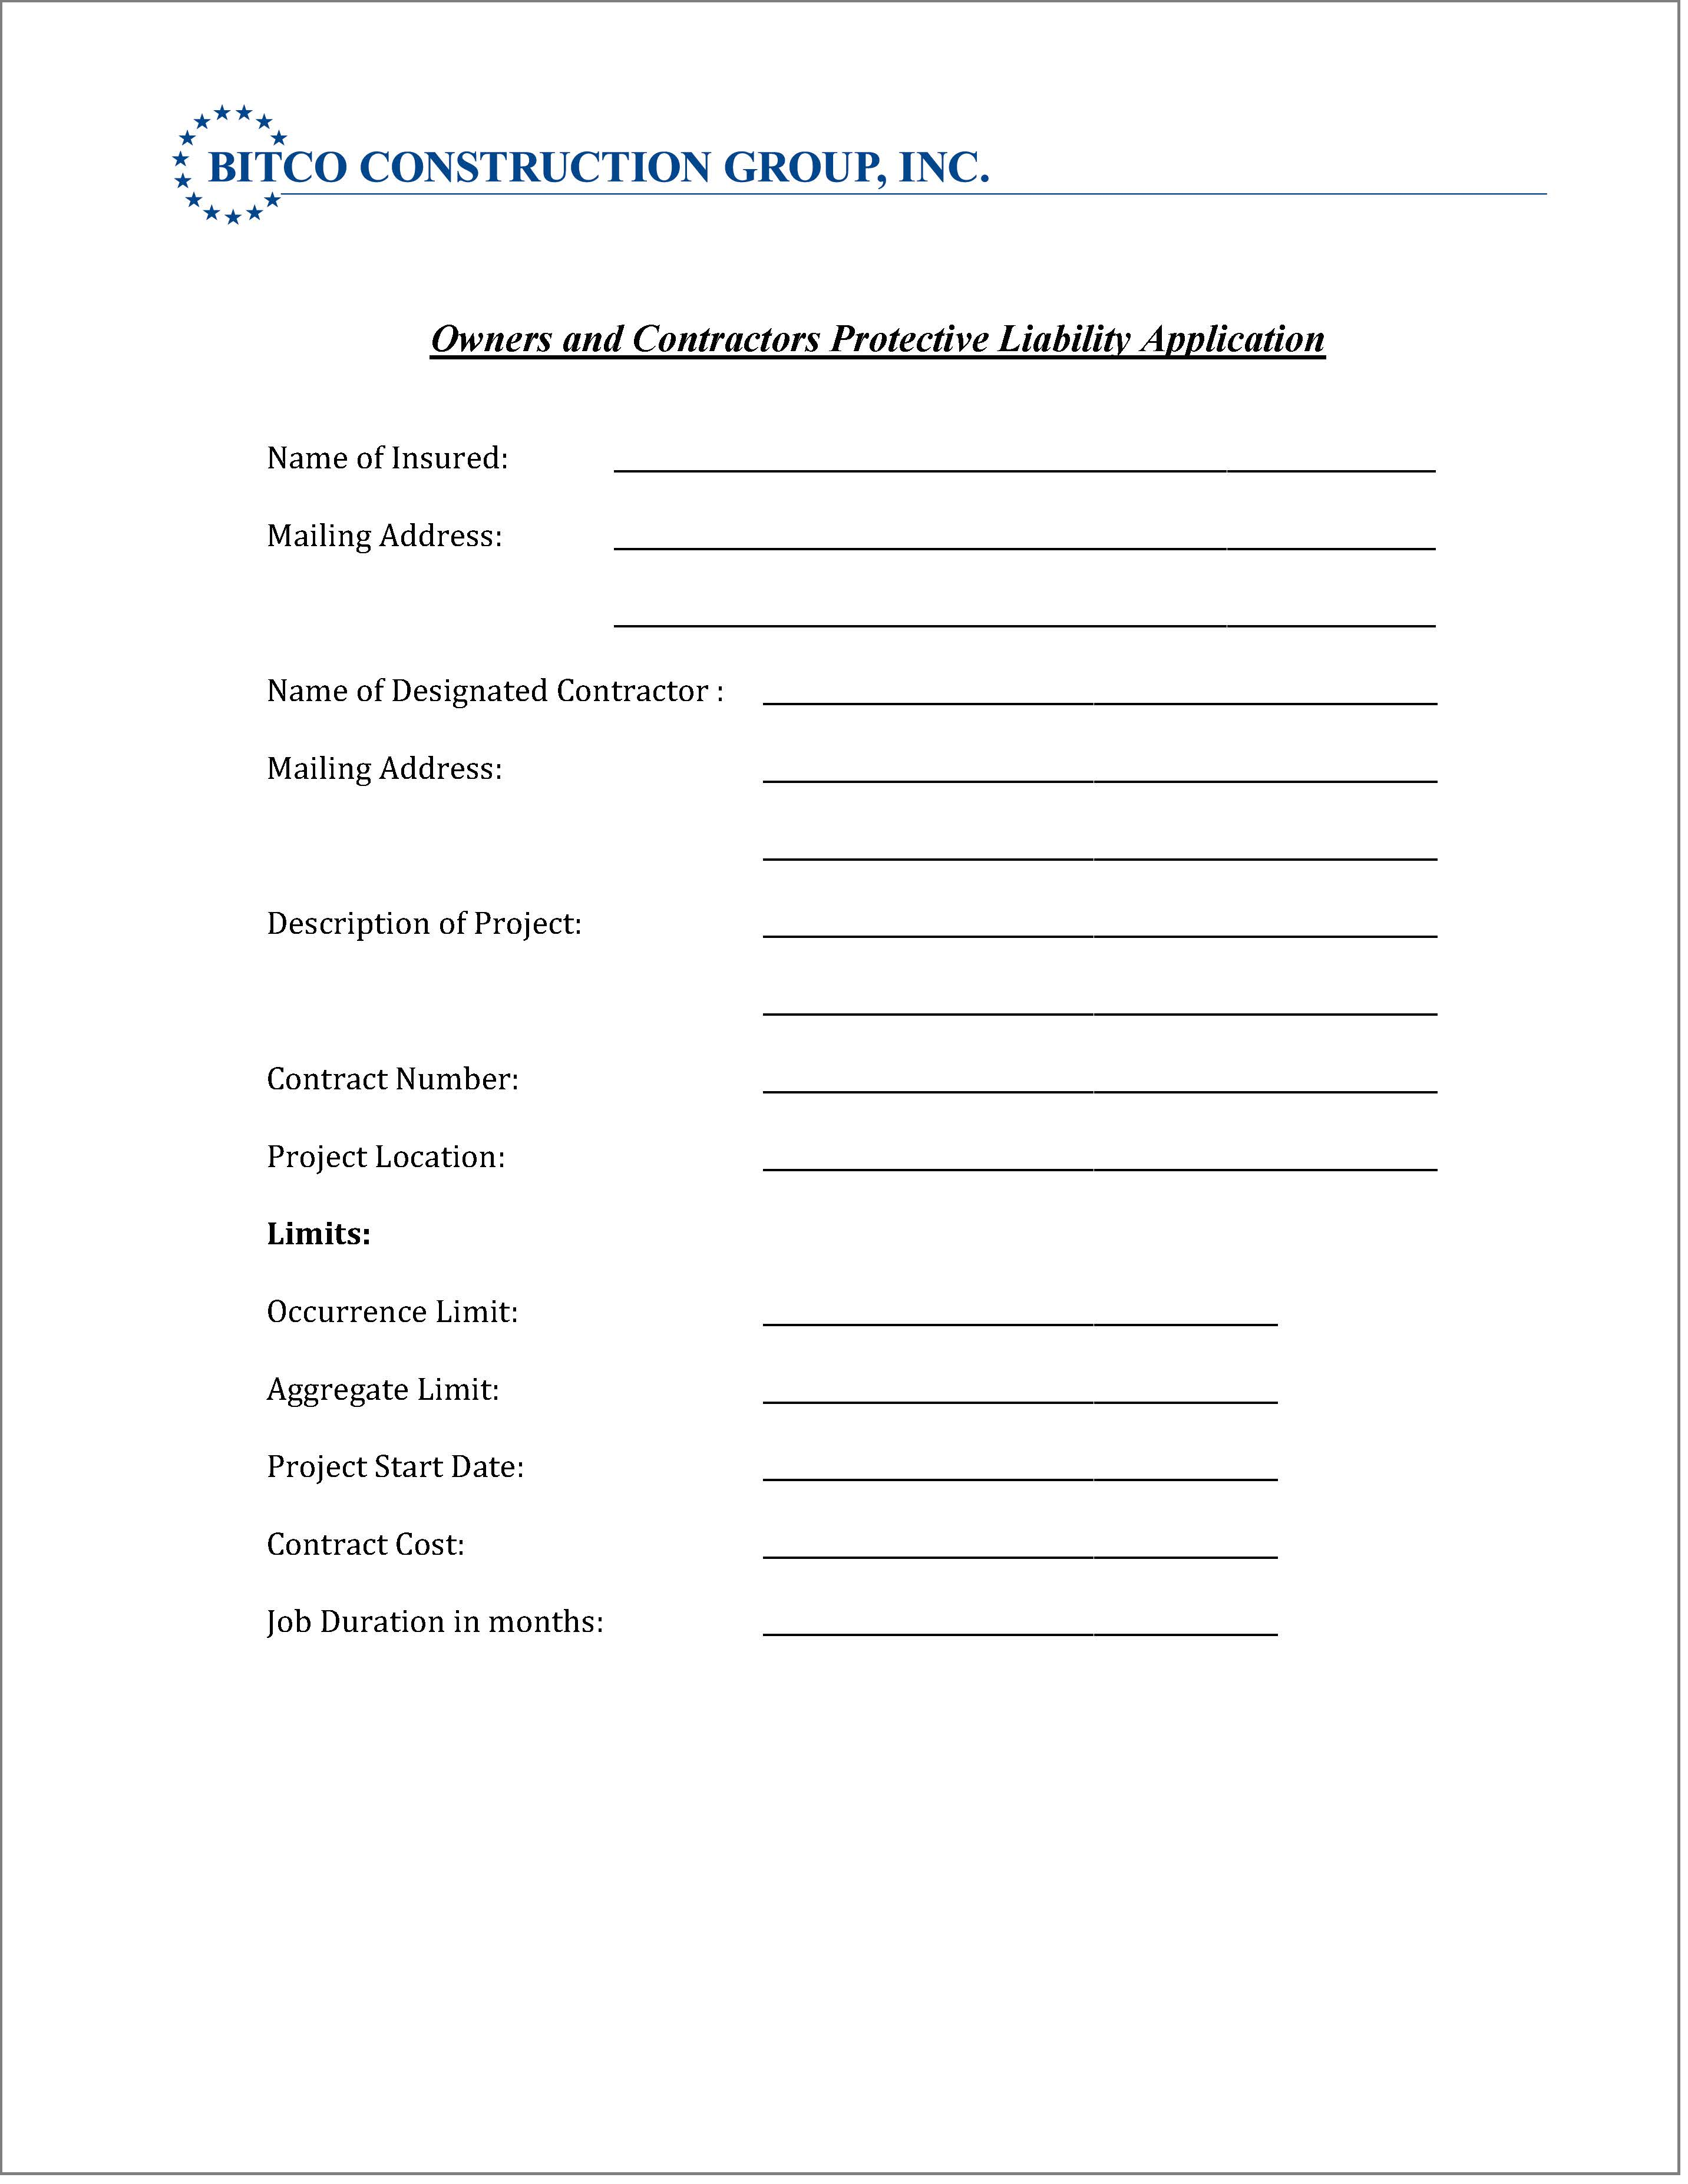 owners-contractors-protective-liability-app